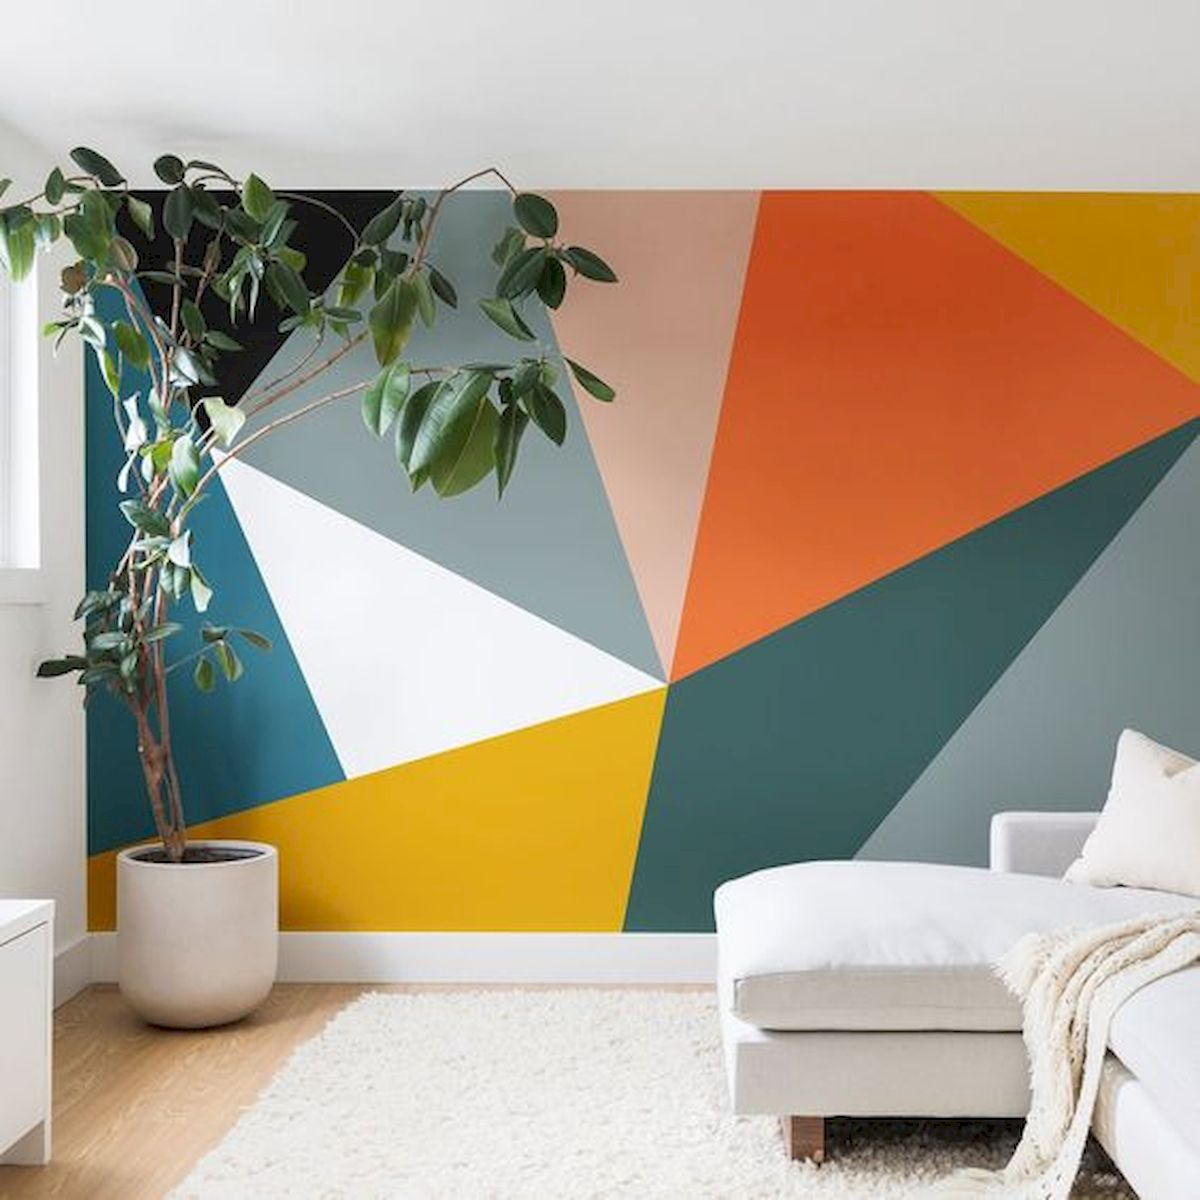 Image result for geometric wall ideas